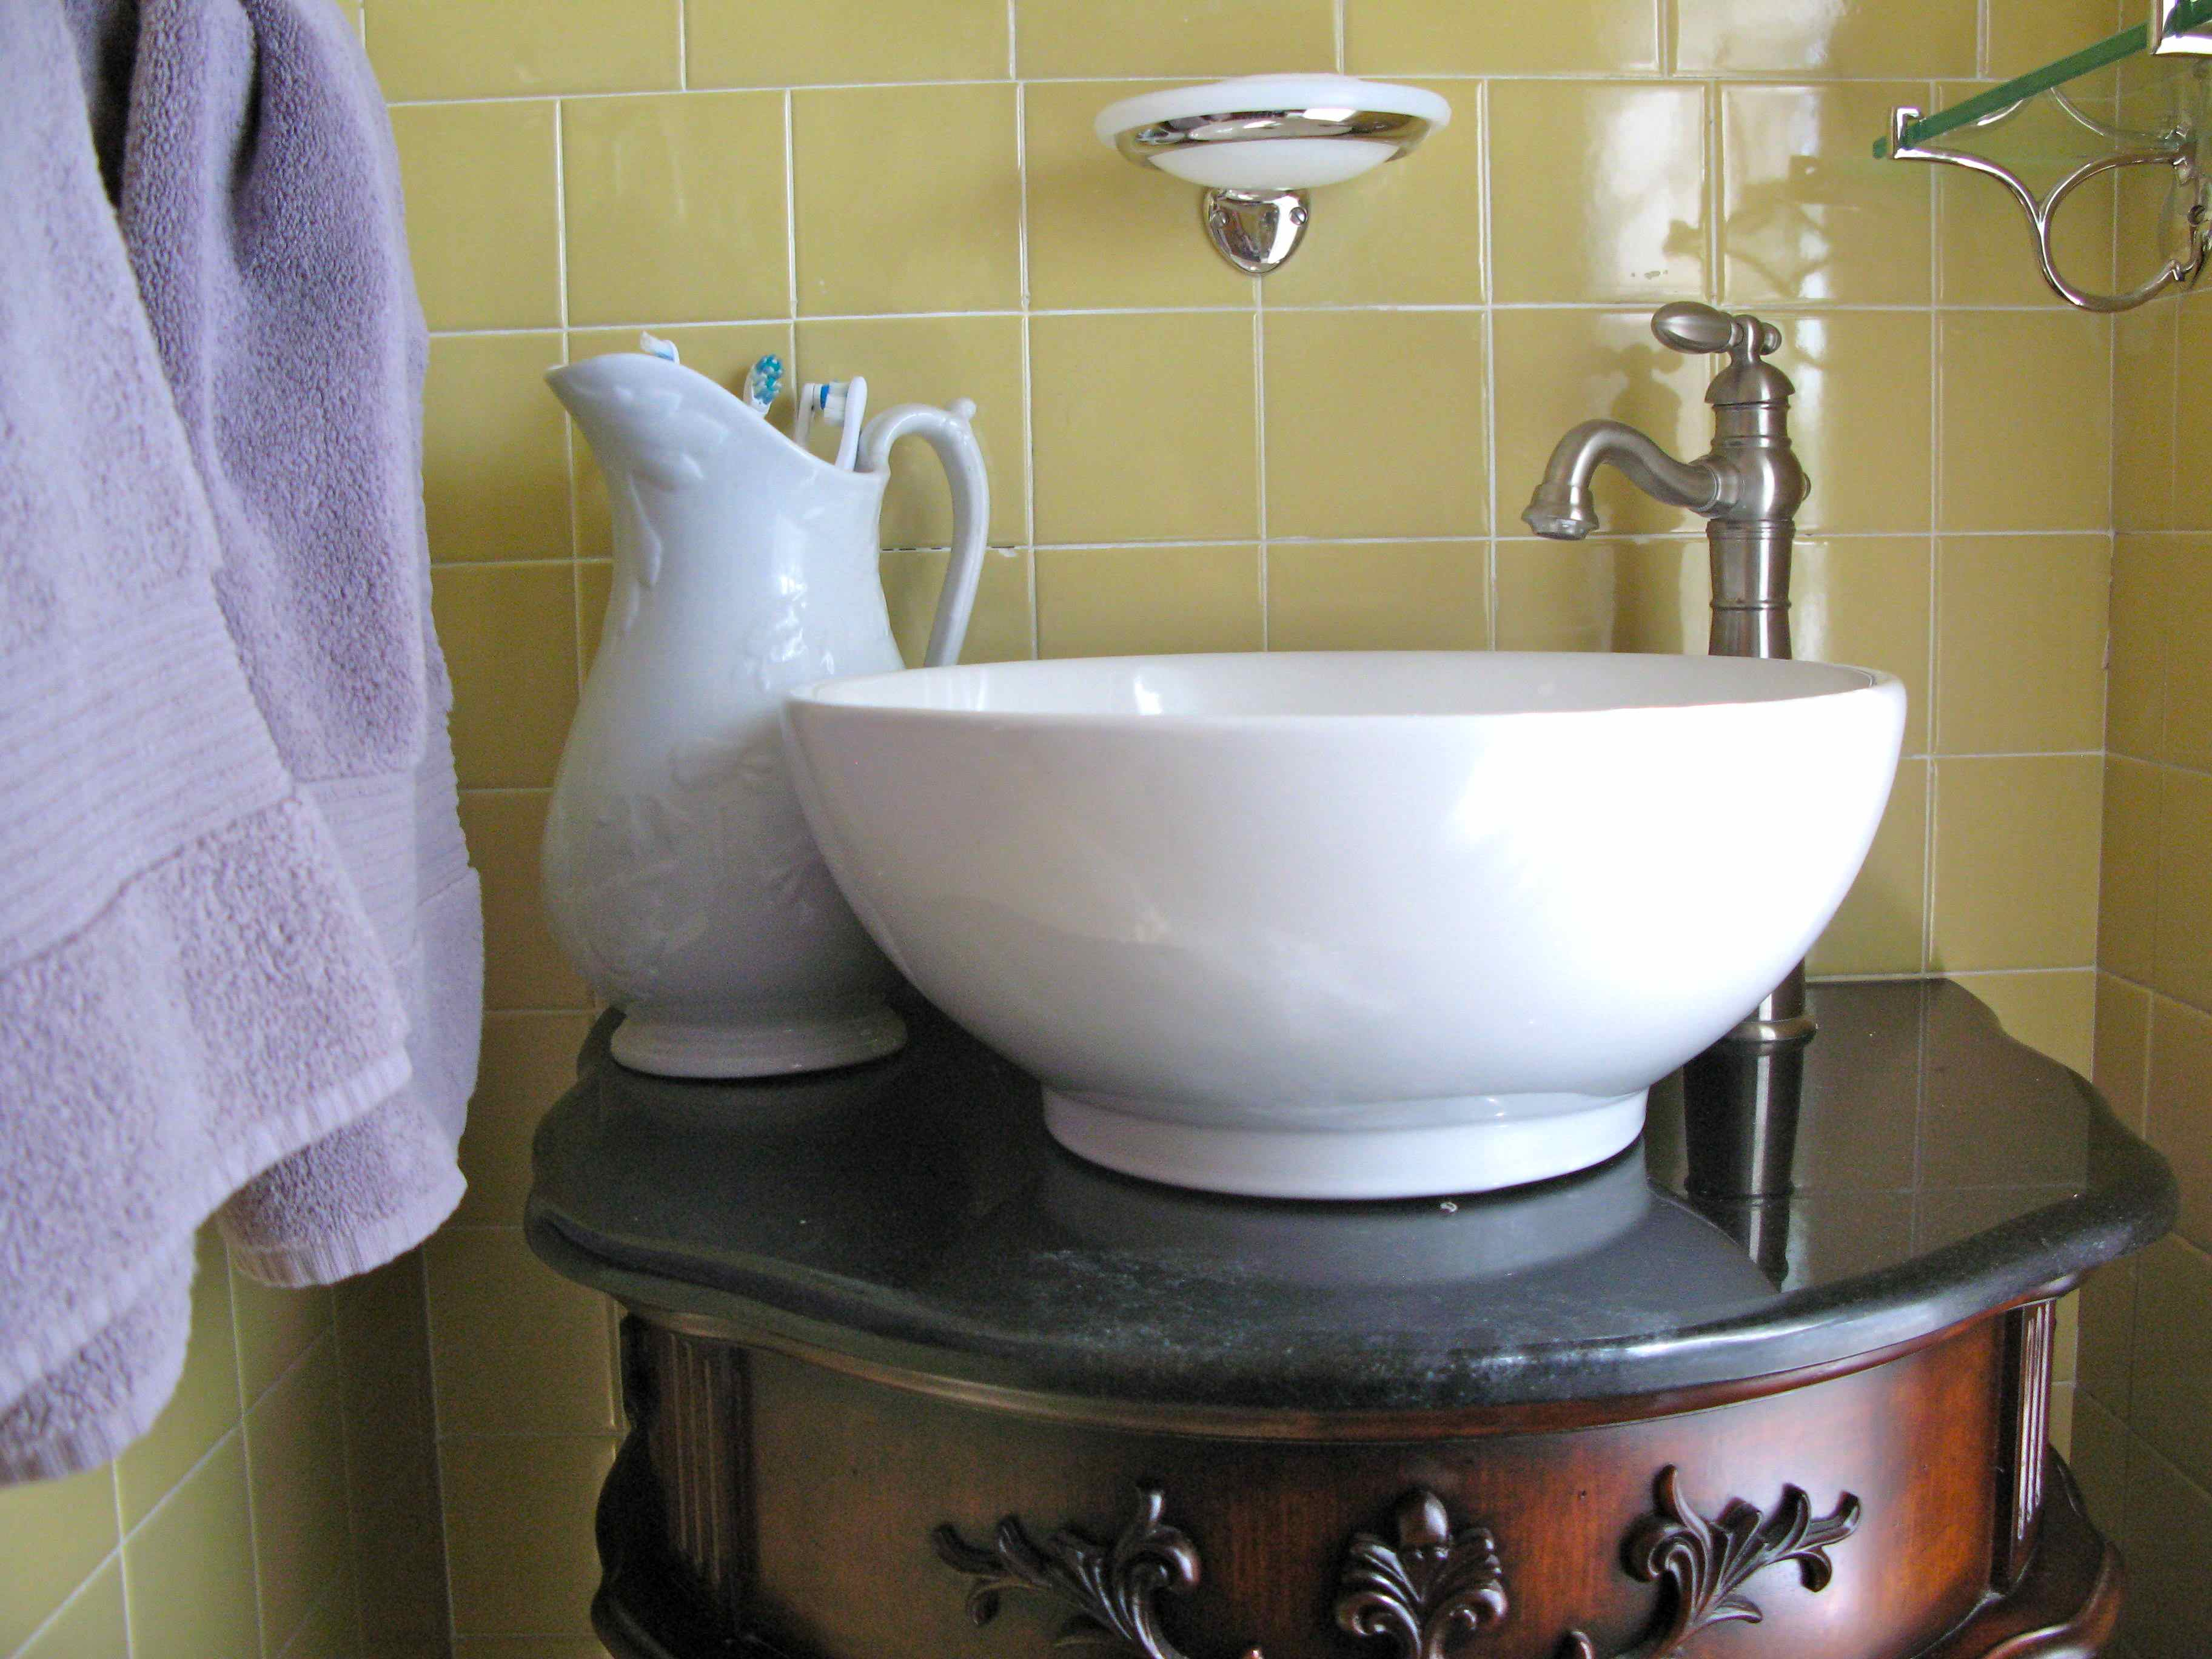 An antique pitcher was placed strategically next to the vessel sink to give the appearance of an old-fashioned wash basin and pitcher set. It's also a great place to store toothbrushes.